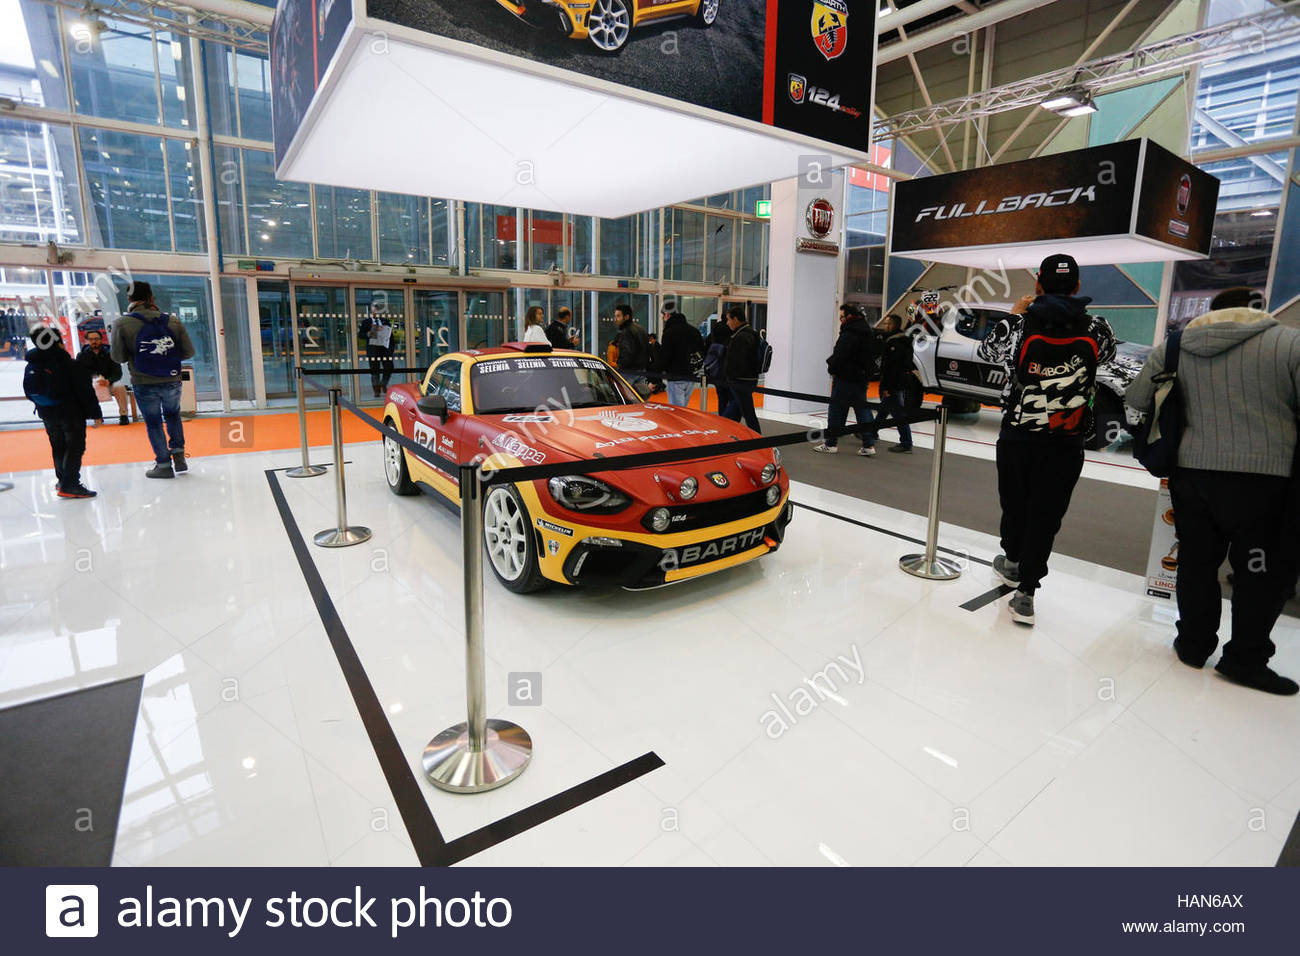 A general view of Fiat Abarth stand during on the opening day of the Bologna Motor Show, on December 3, 2016 in - Stock Image